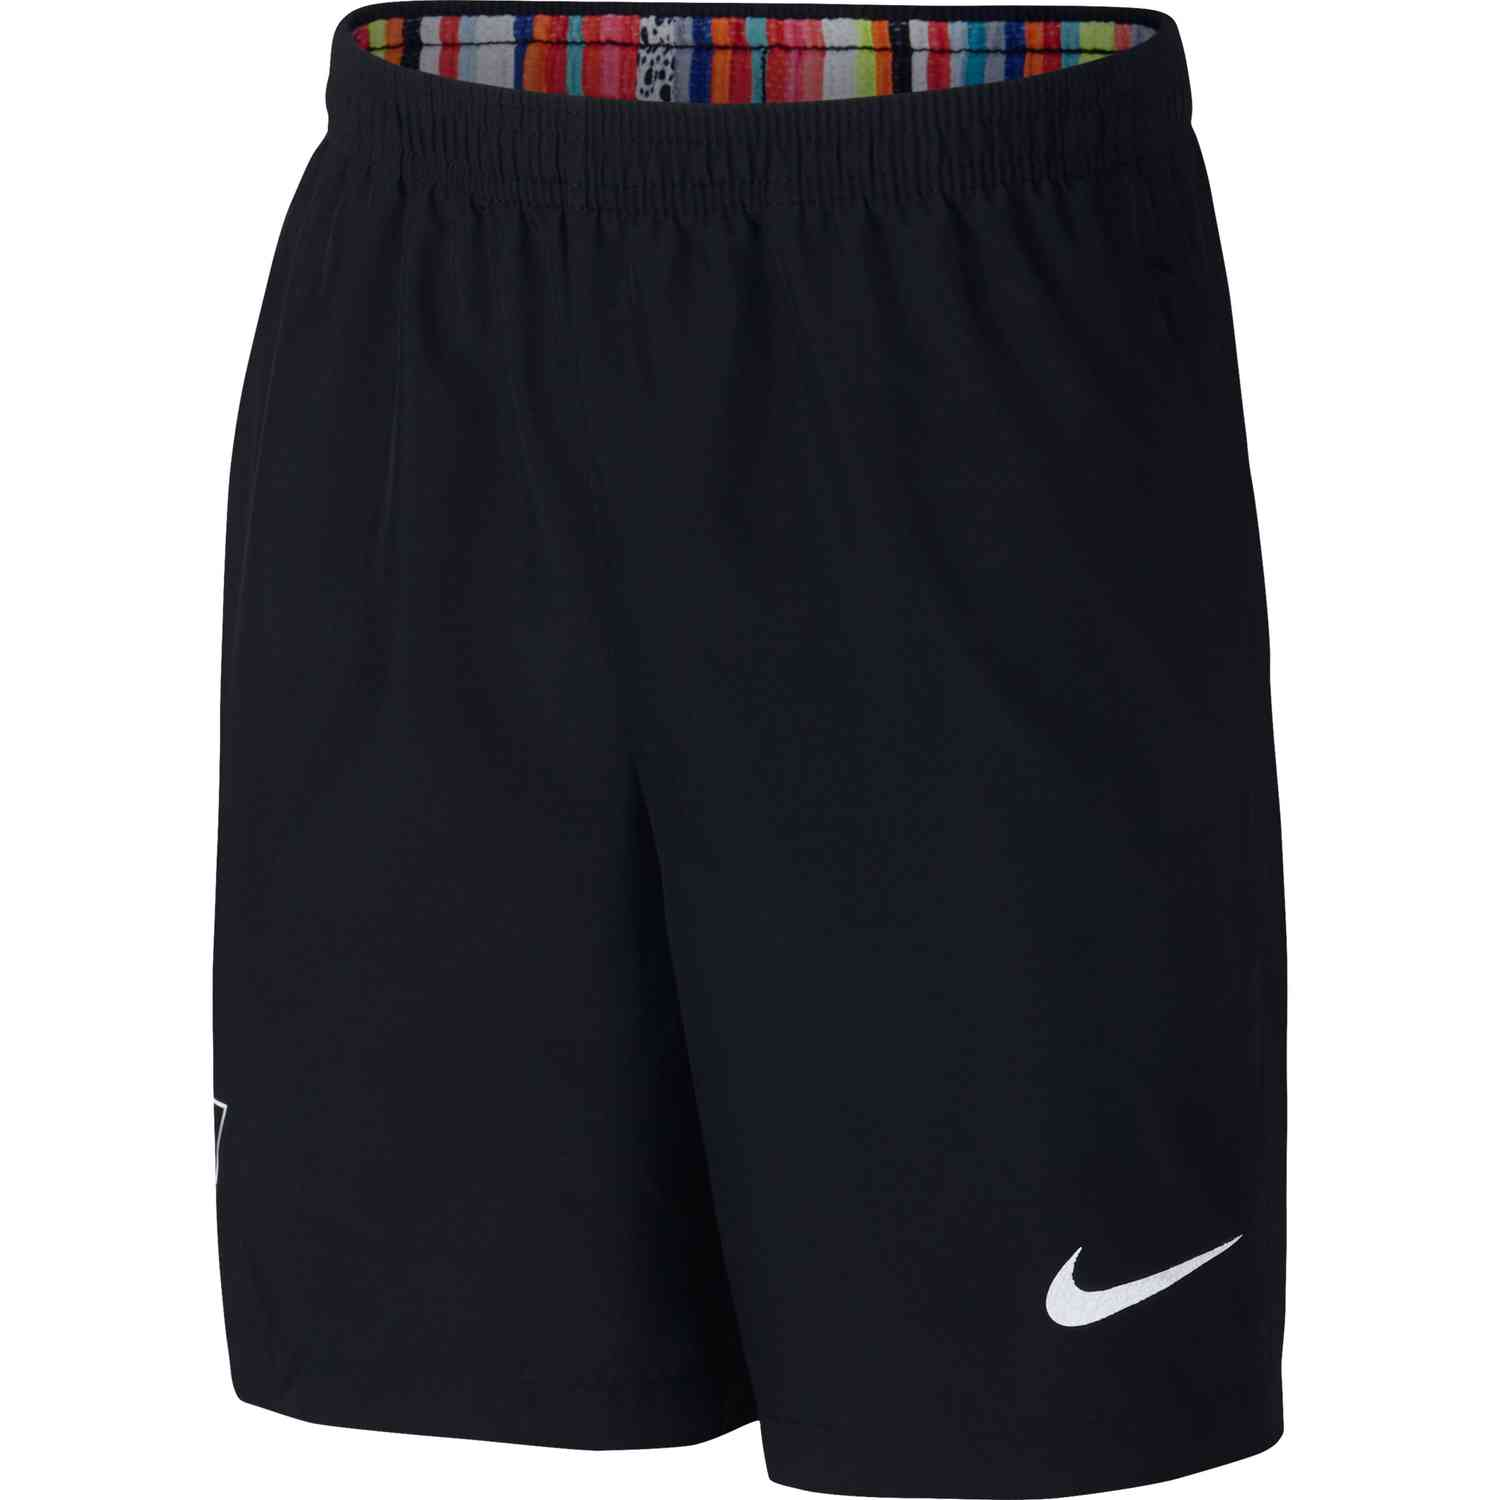 aeddf7e7f Nike Kids CR7 Short - Level Up - SoccerPro